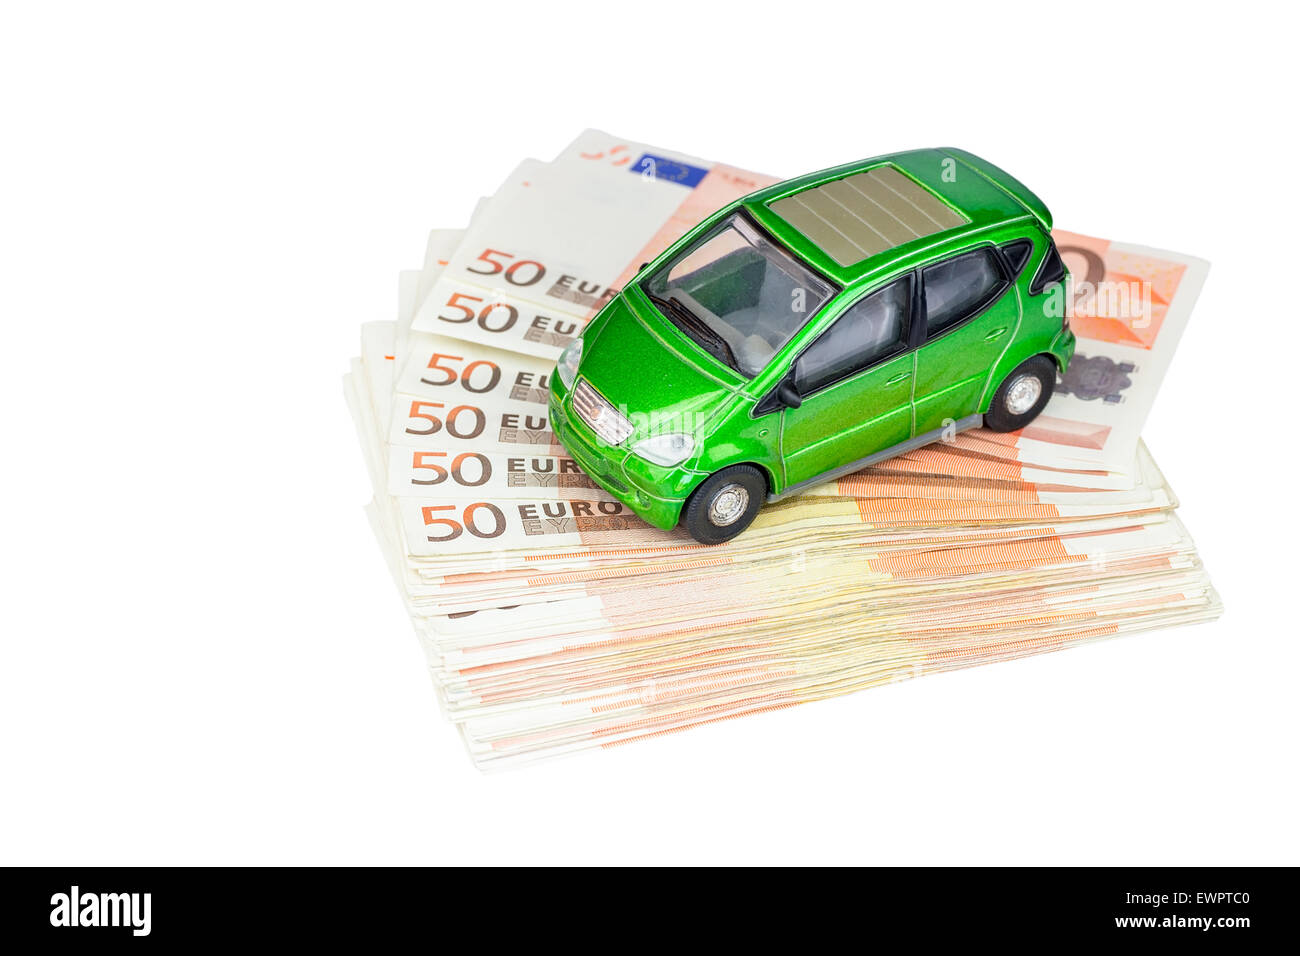 Green model car on stack of euro notes as symbol for buying or costs - Stock Image